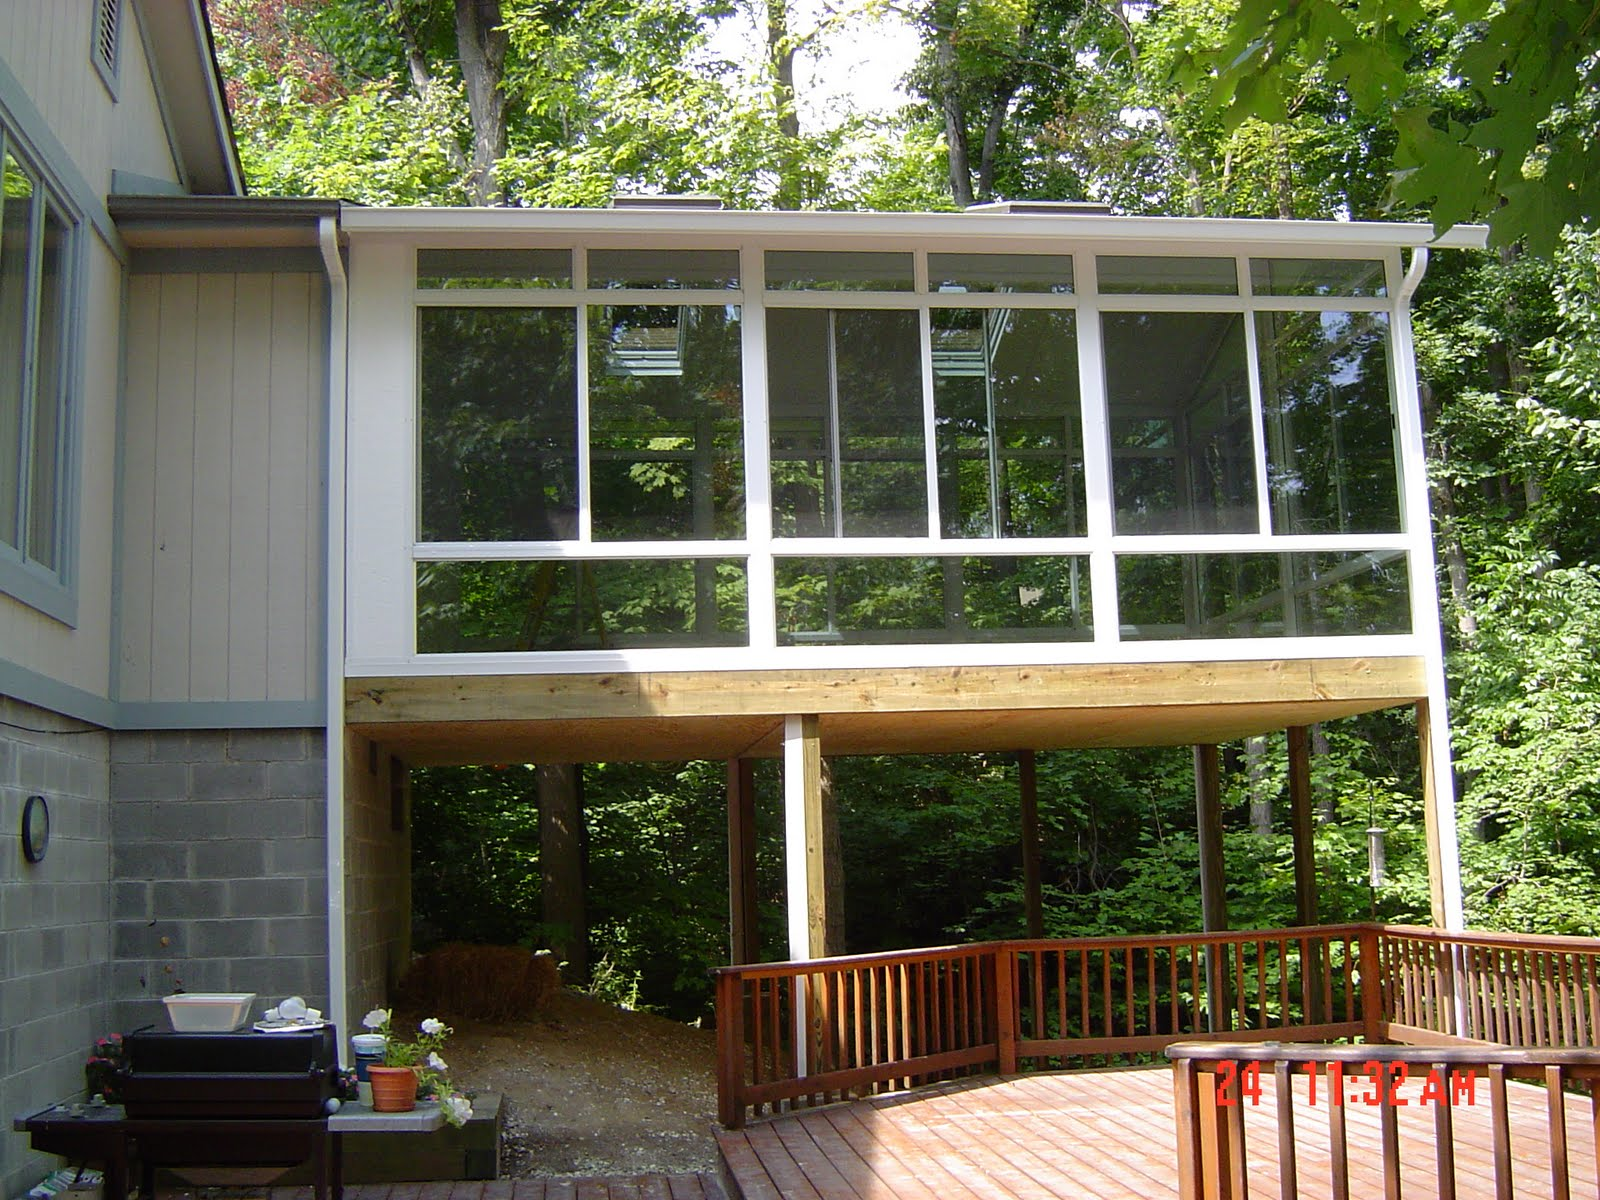 dallas beewindow elevated 2nd floor sunroom no problem